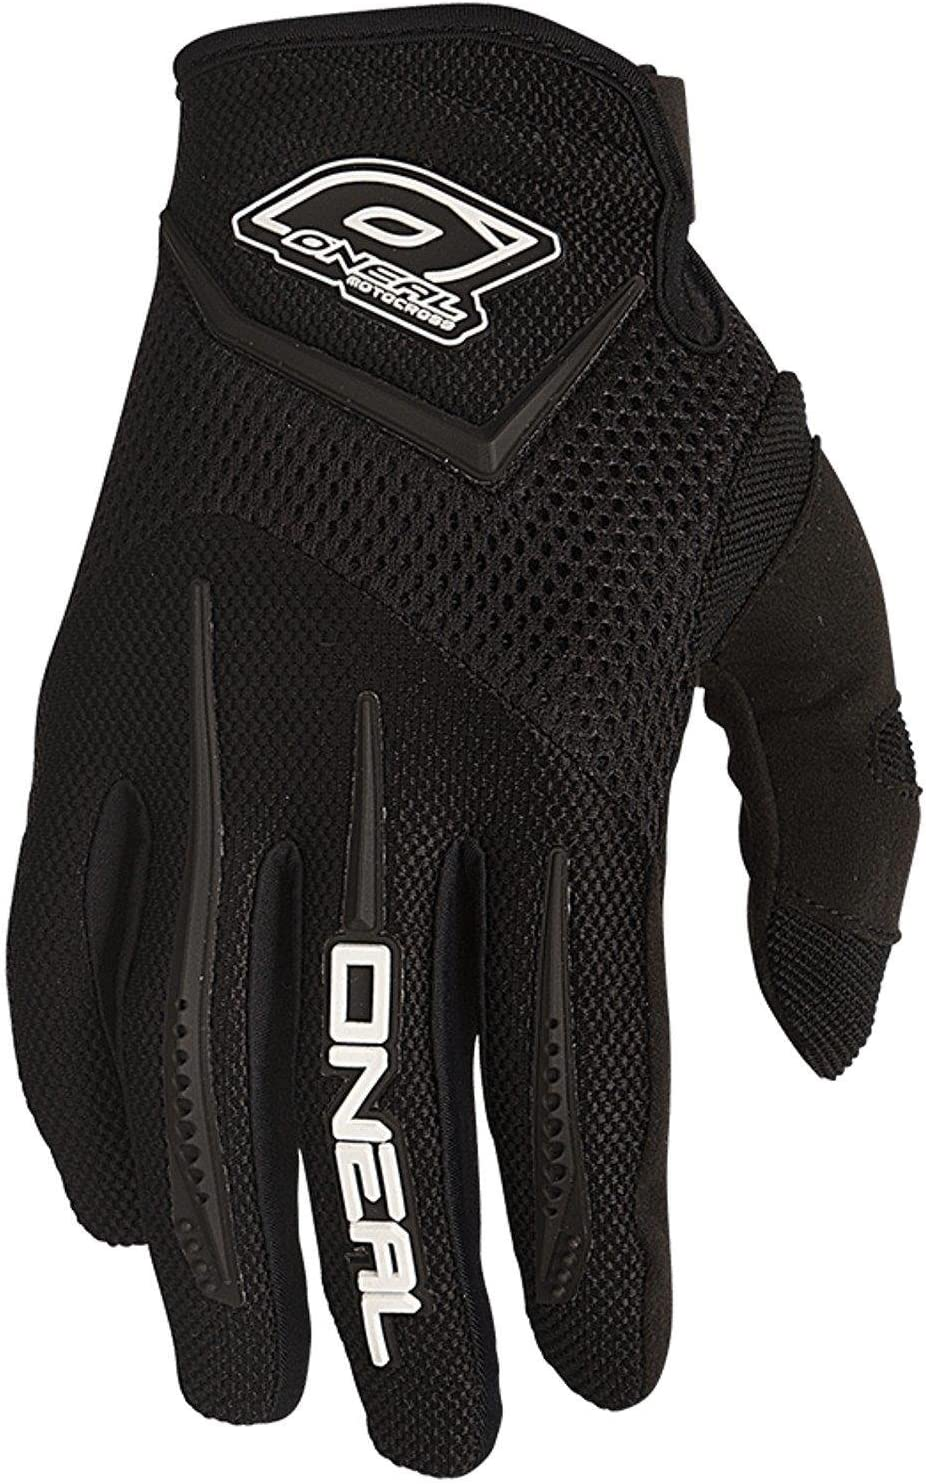 NEW O/'NEAL Racing Off-Road MX ATV MOTOCROSS MATRIX GLOVES YOUTH X-LARGE /& LARGE